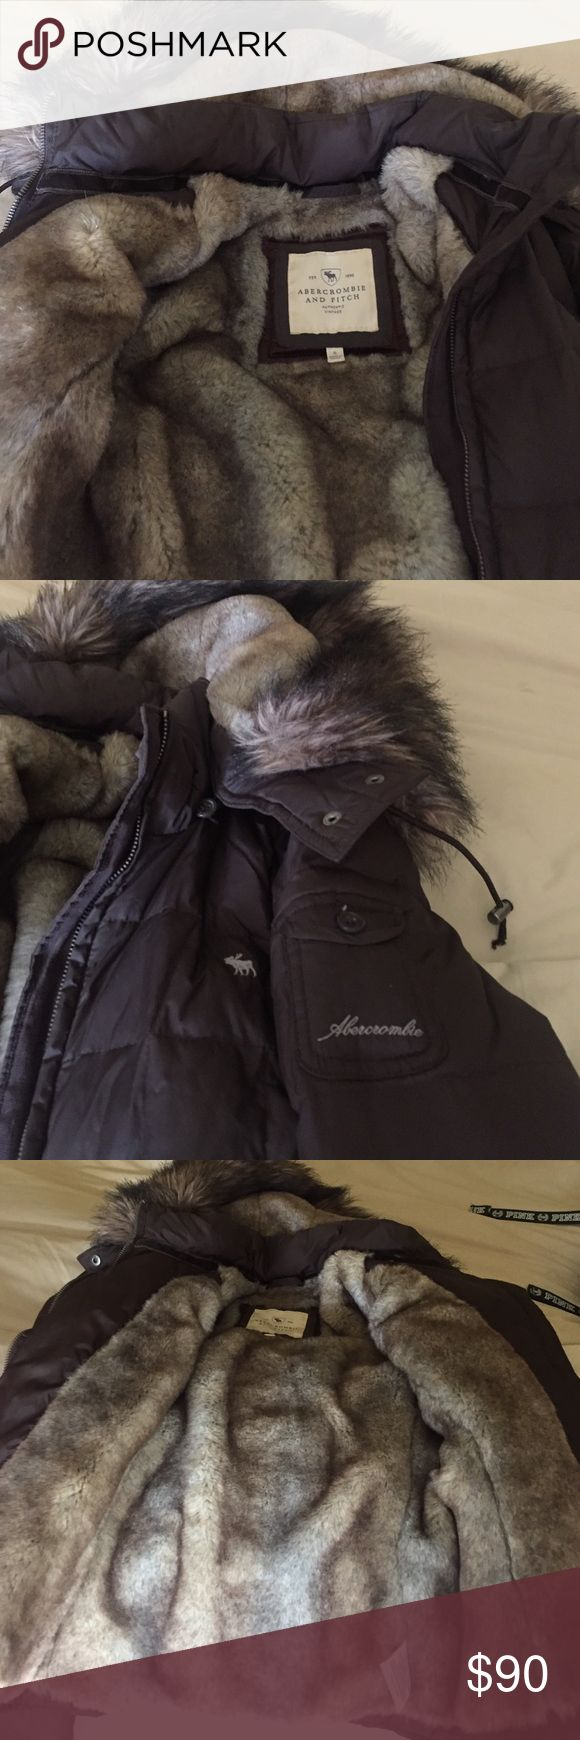 Abercrombie and Fitch jacket Very warm heavy duty jacket. Amazing condition Abercrombie & Fitch Jackets & Coats